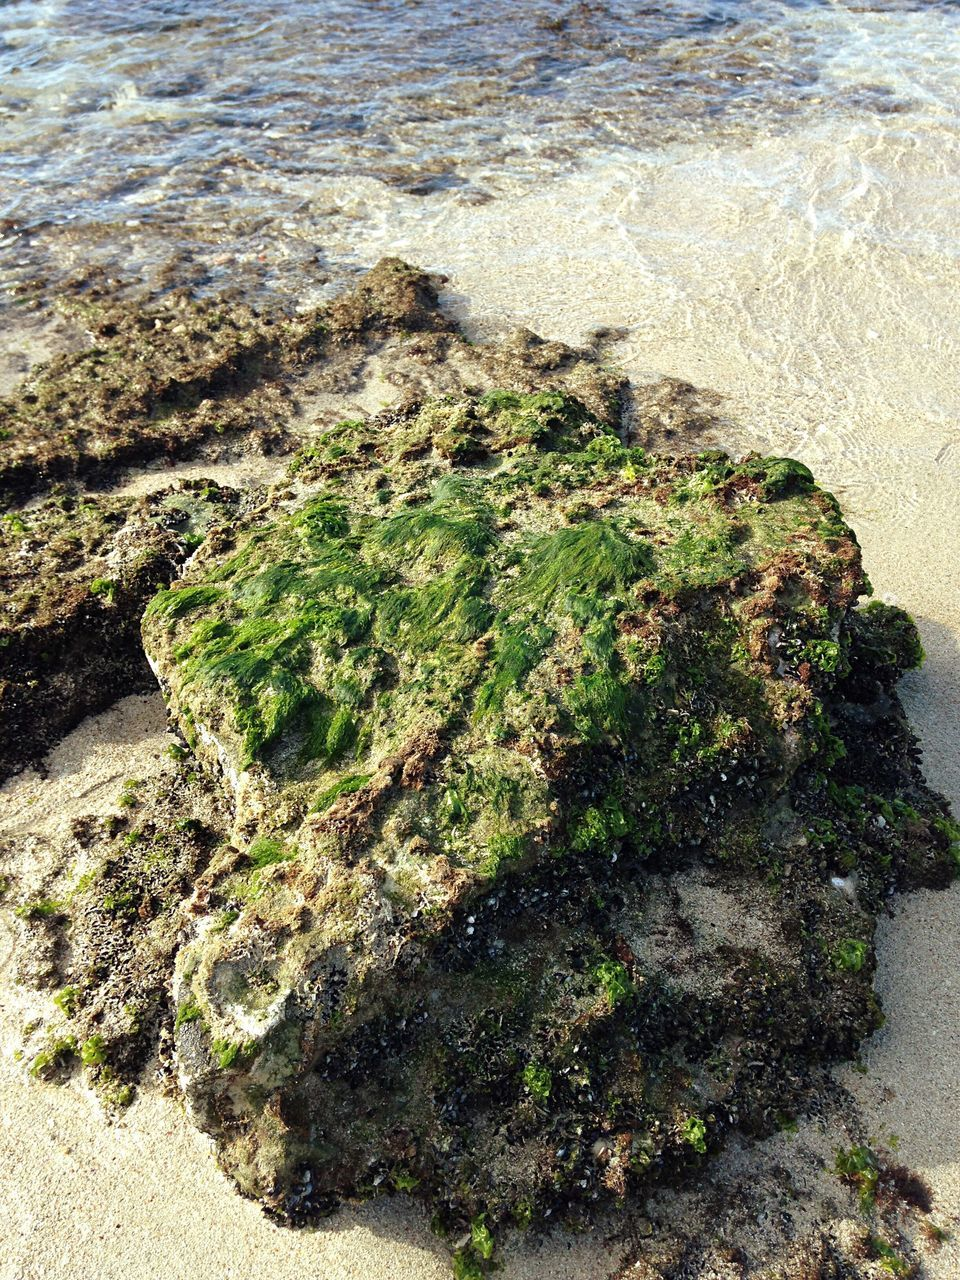 sea, nature, water, high angle view, rock - object, moss, day, no people, beach, algae, outdoors, beauty in nature, sunlight, tranquility, sand, wave, close-up